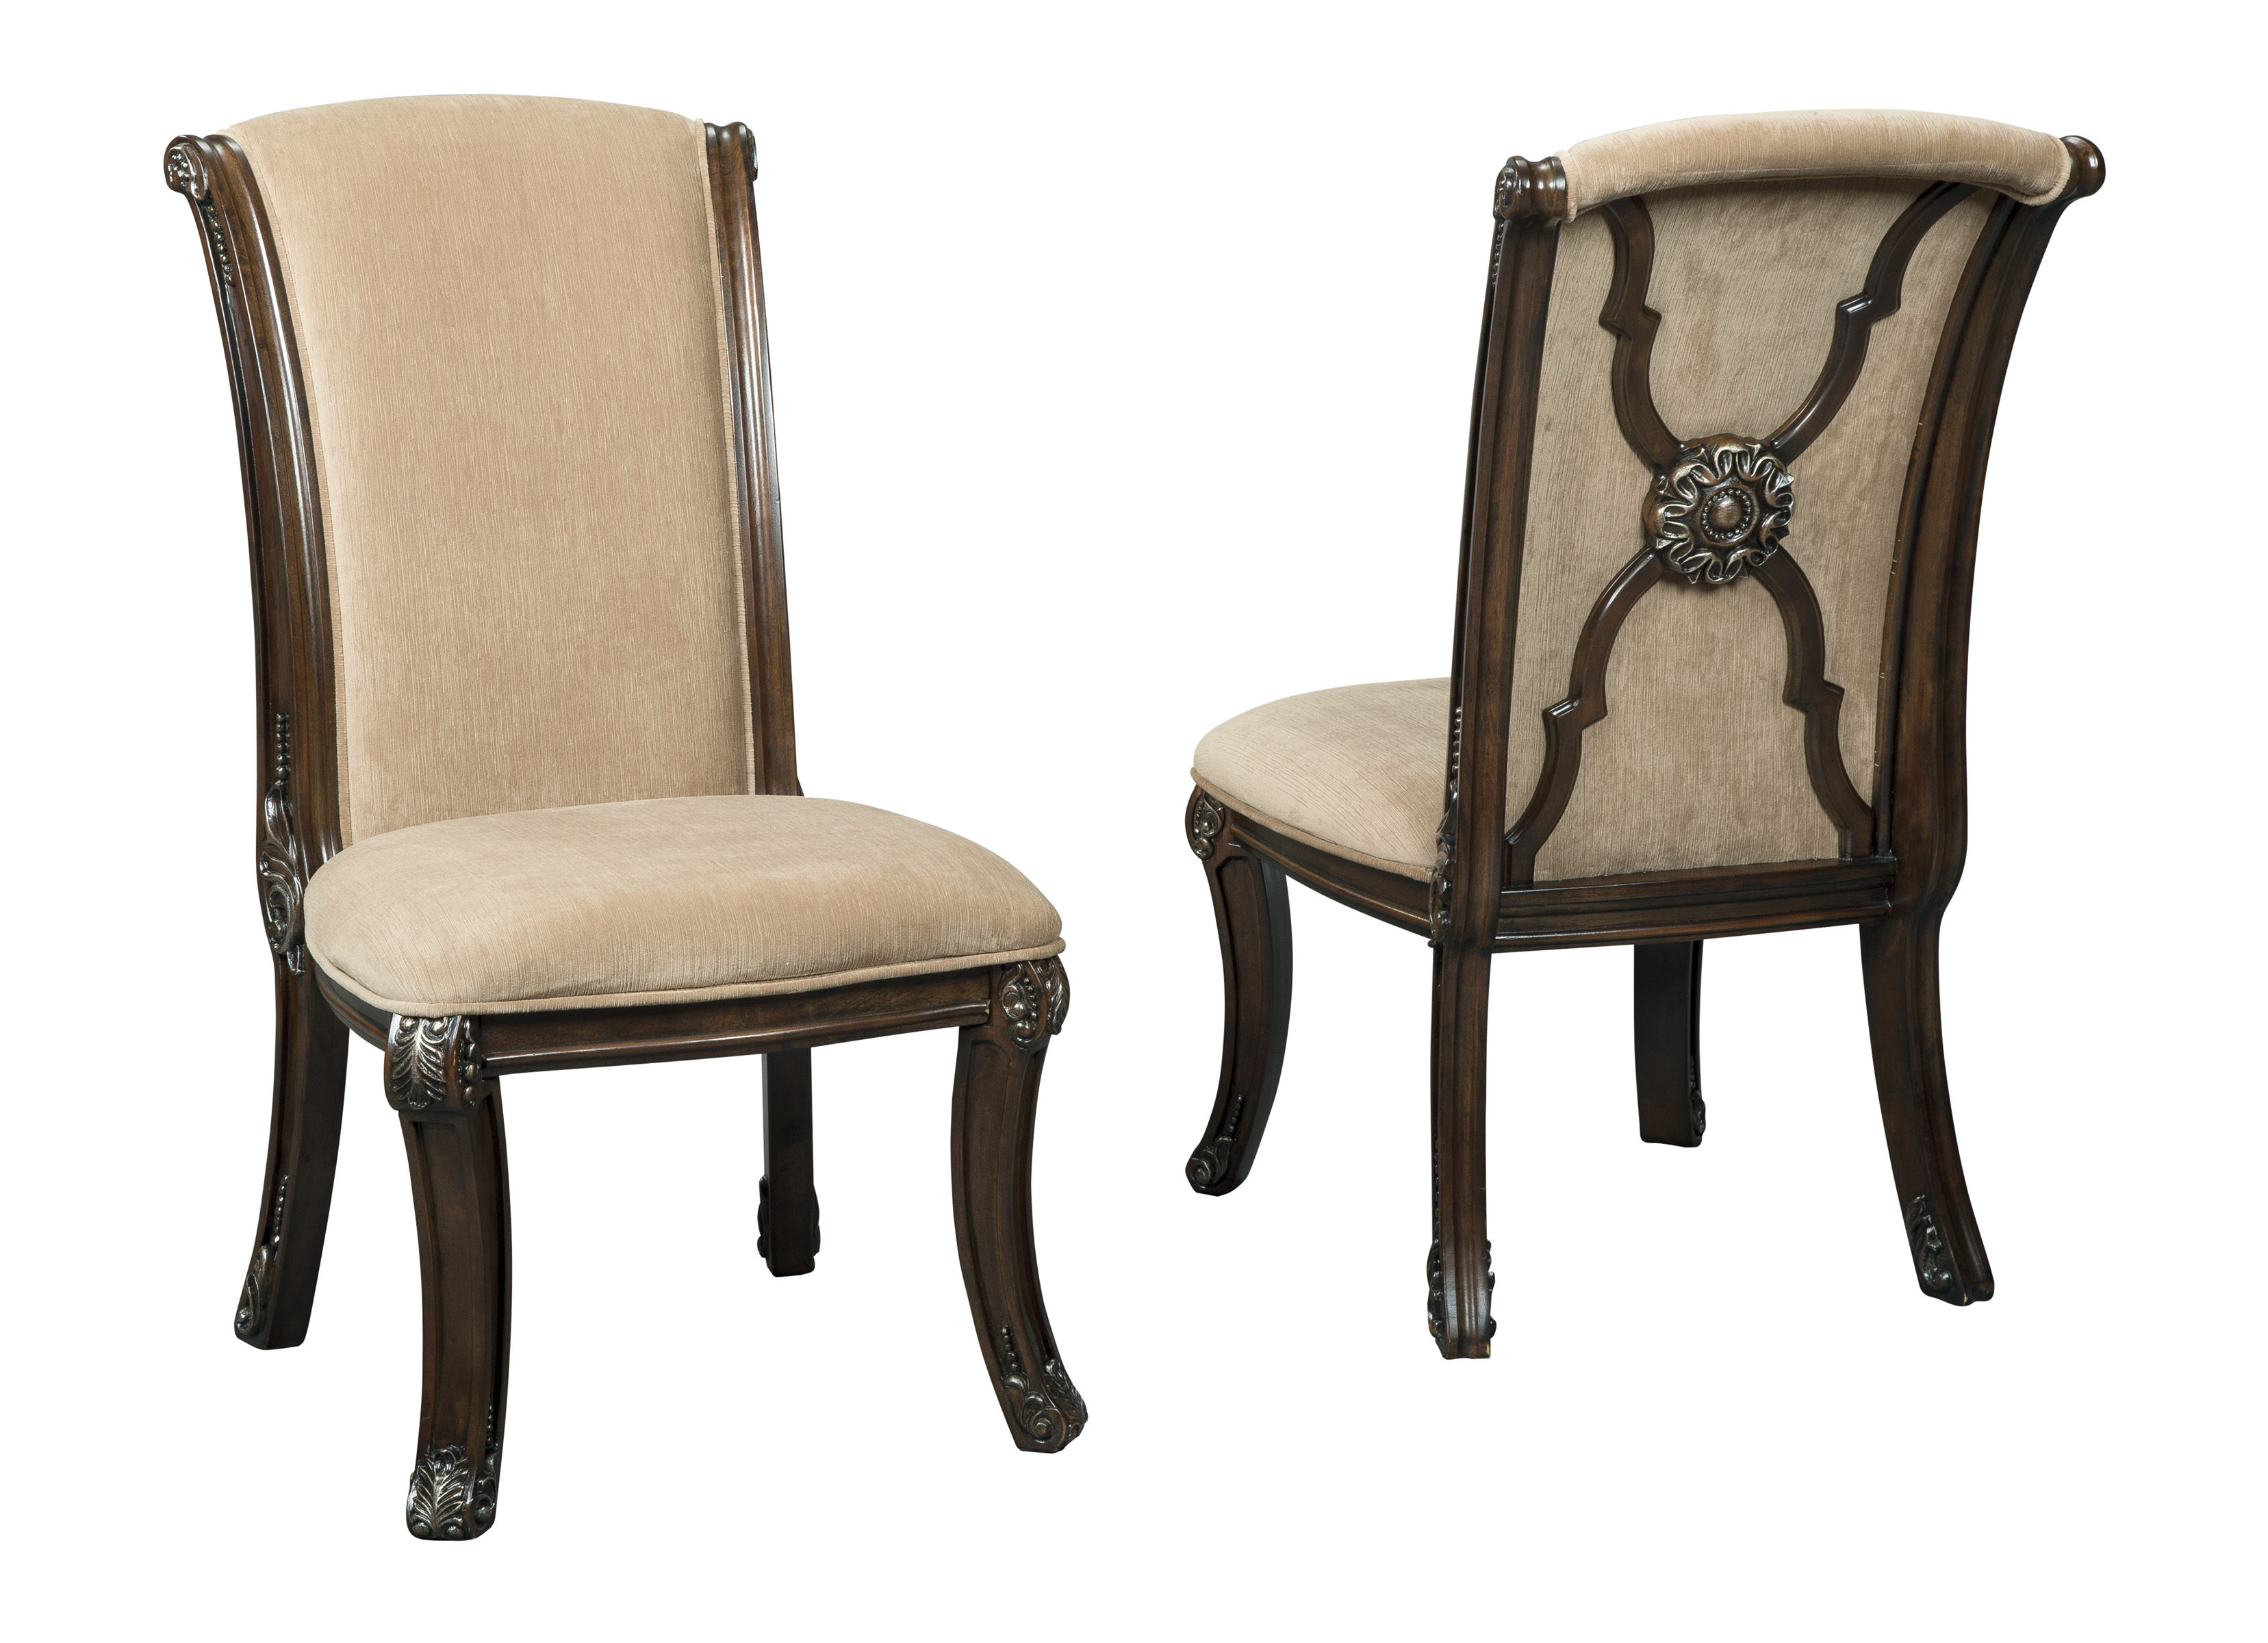 d75bdfbb624ed6 2 Ashley Furniture Valraven Brown Dining Upholstered Side Chairs Click To  Enlarge ...